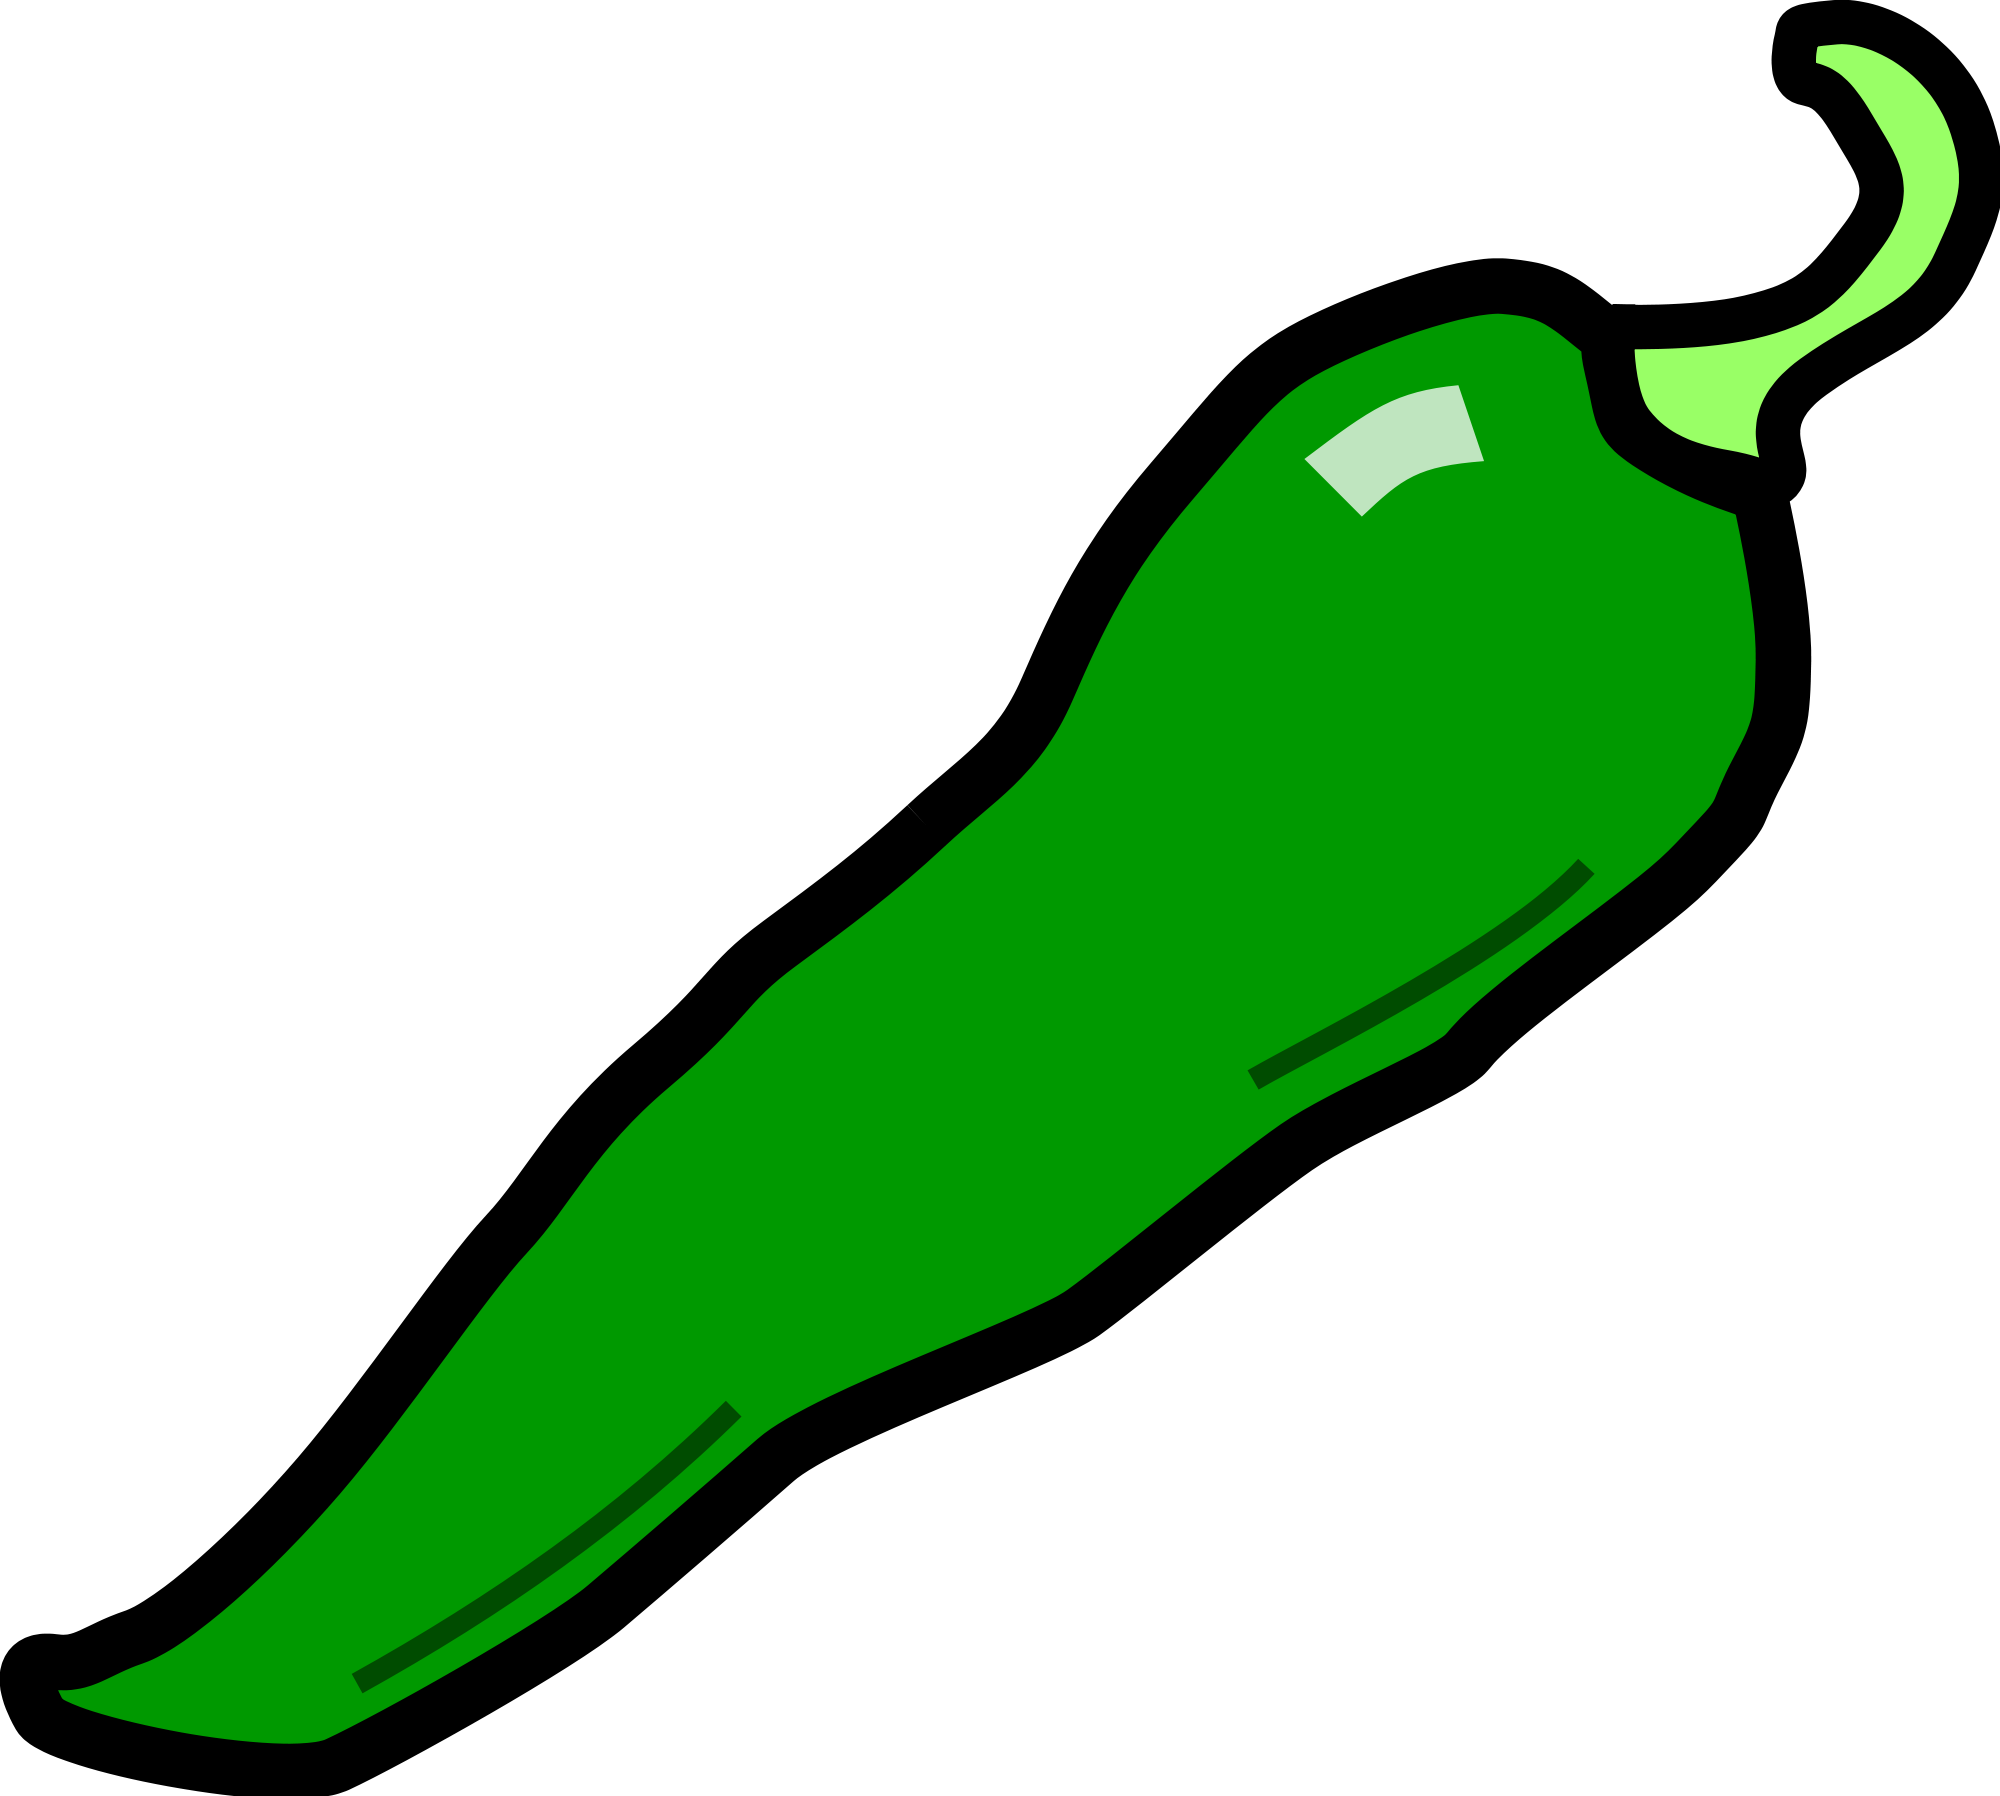 Red clipart green chili #5